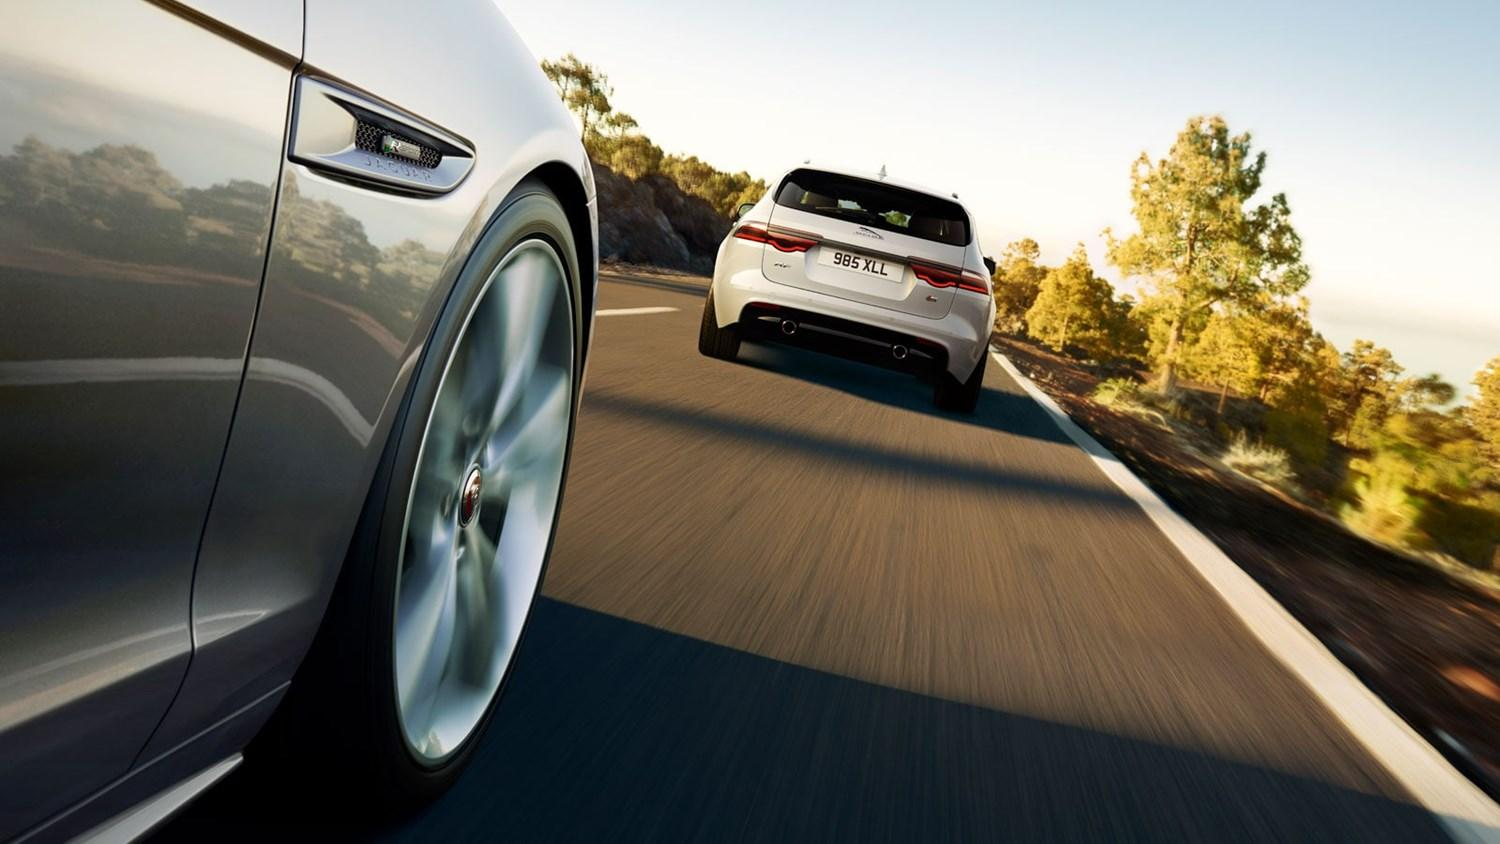 Rear view of white Jaguar XF estate from wheel arch of trailing Jaguar